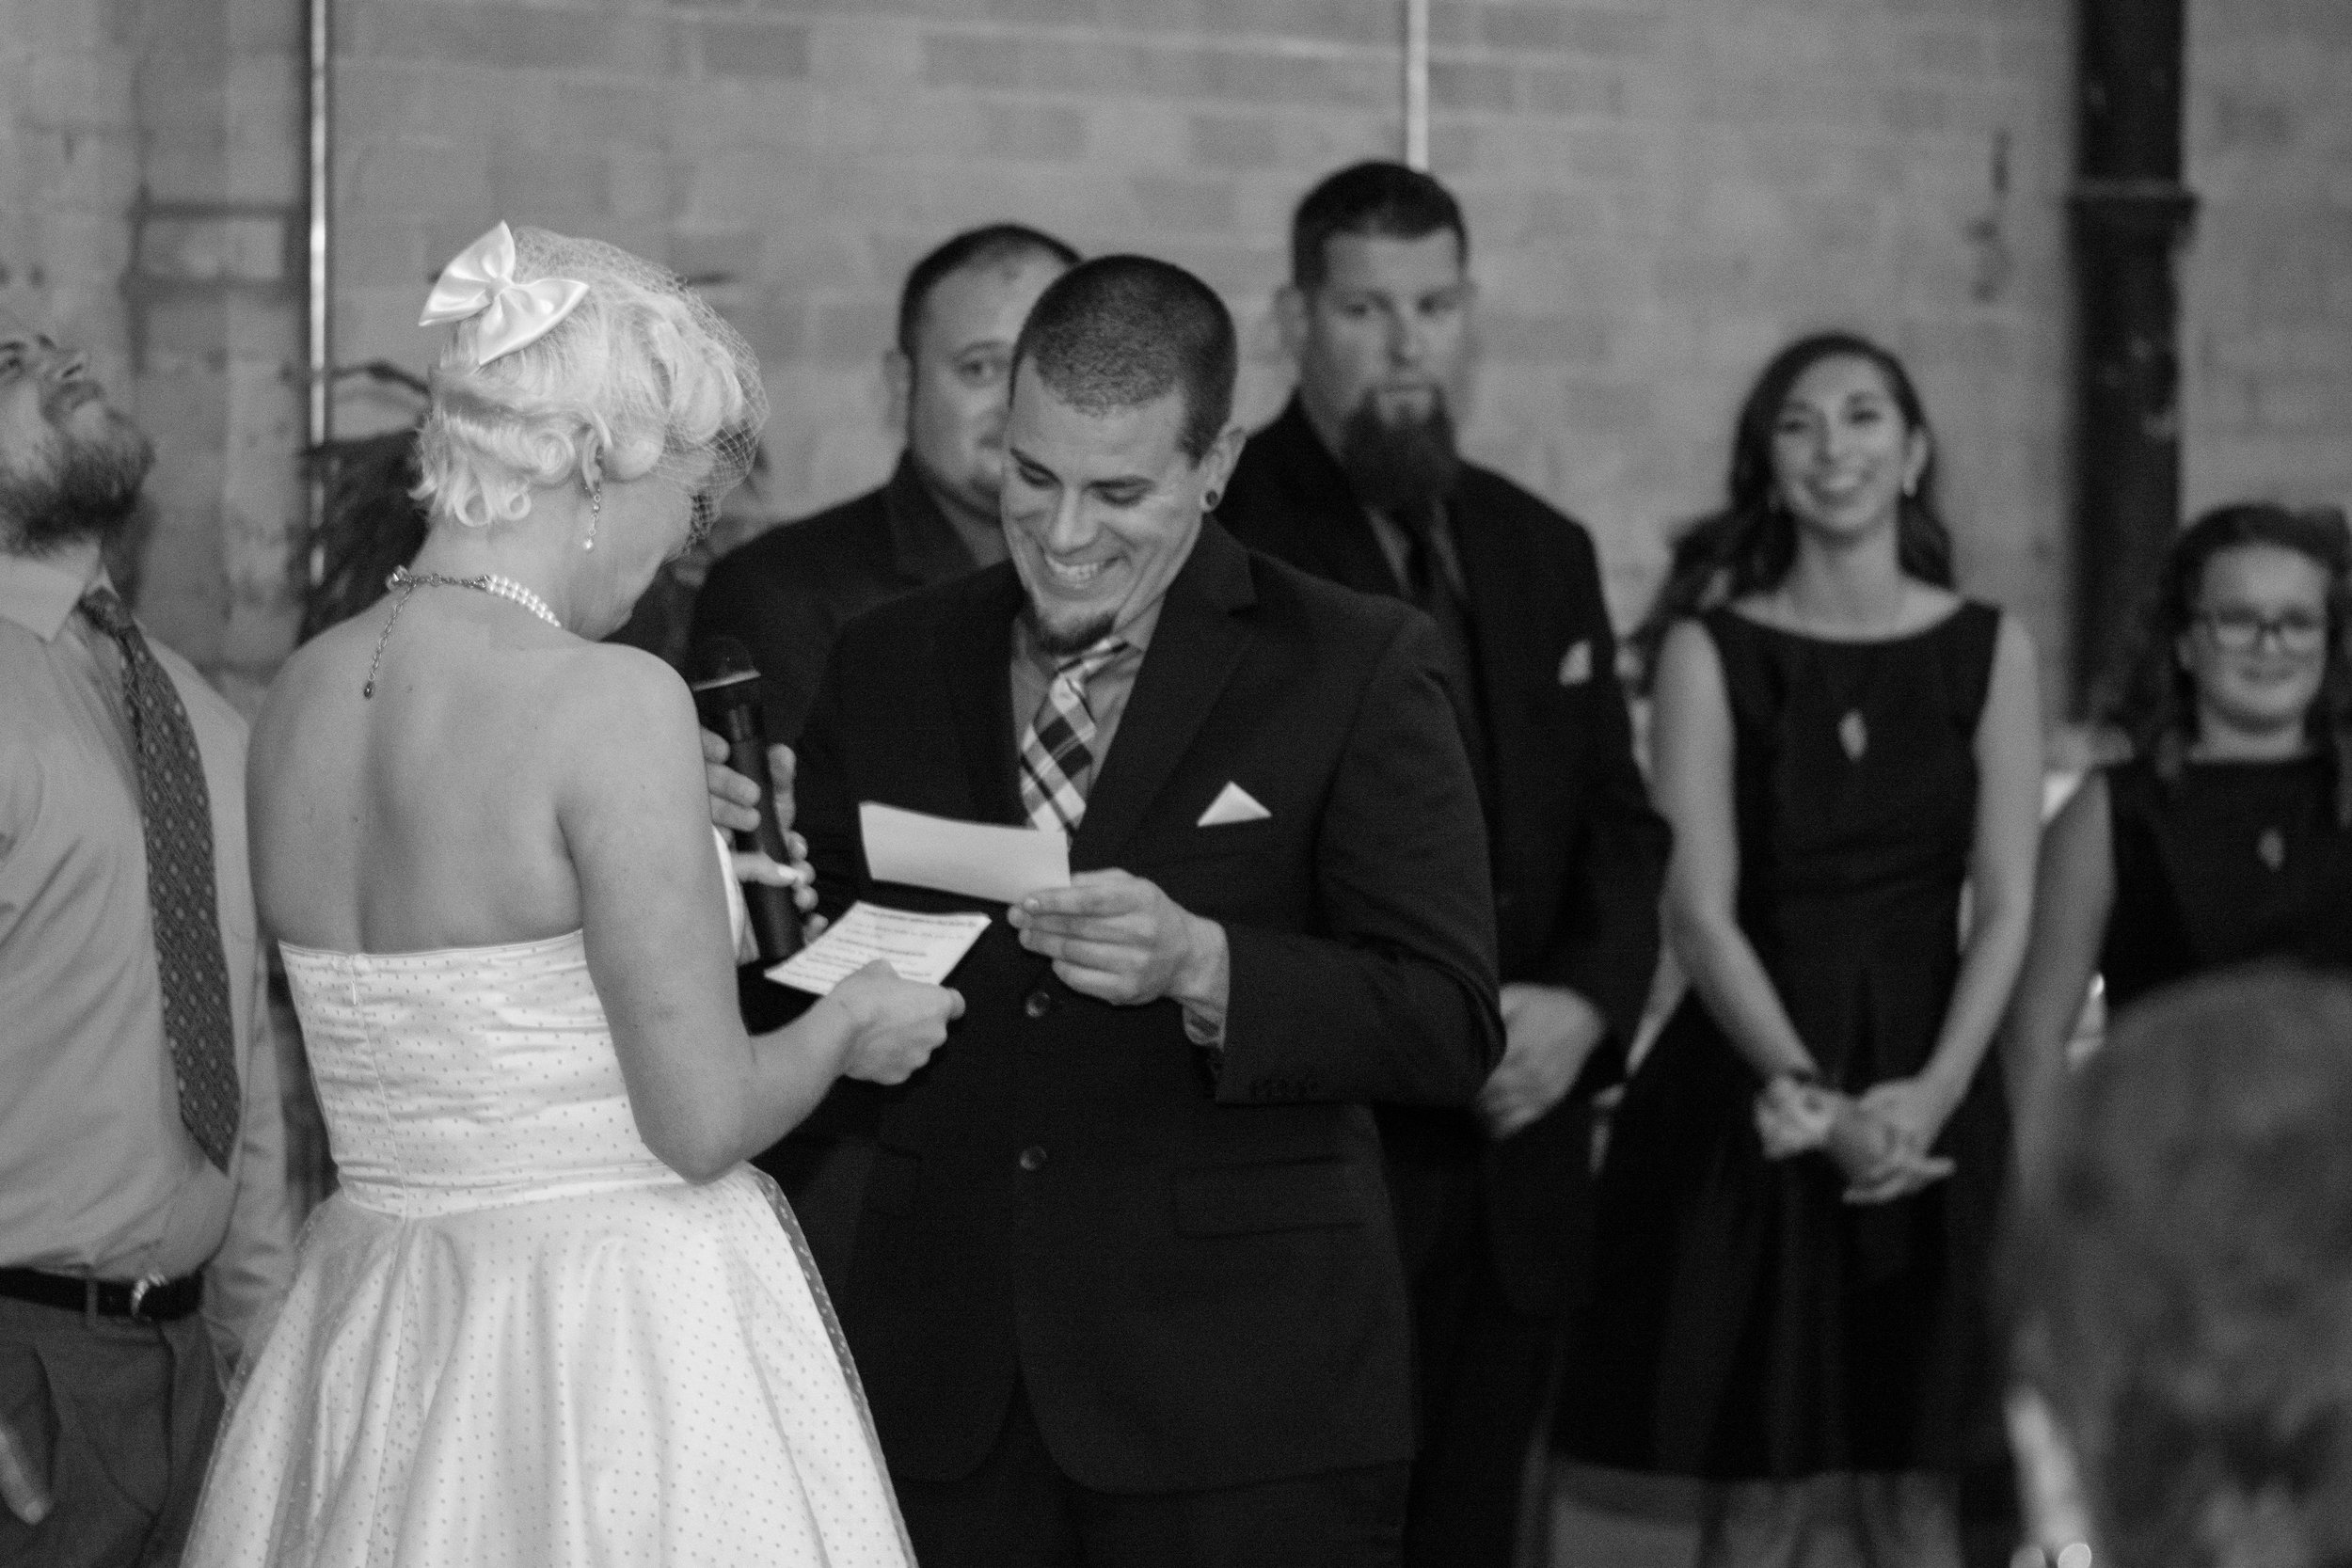 amanda+tom_wedding (464 of 592).jpg